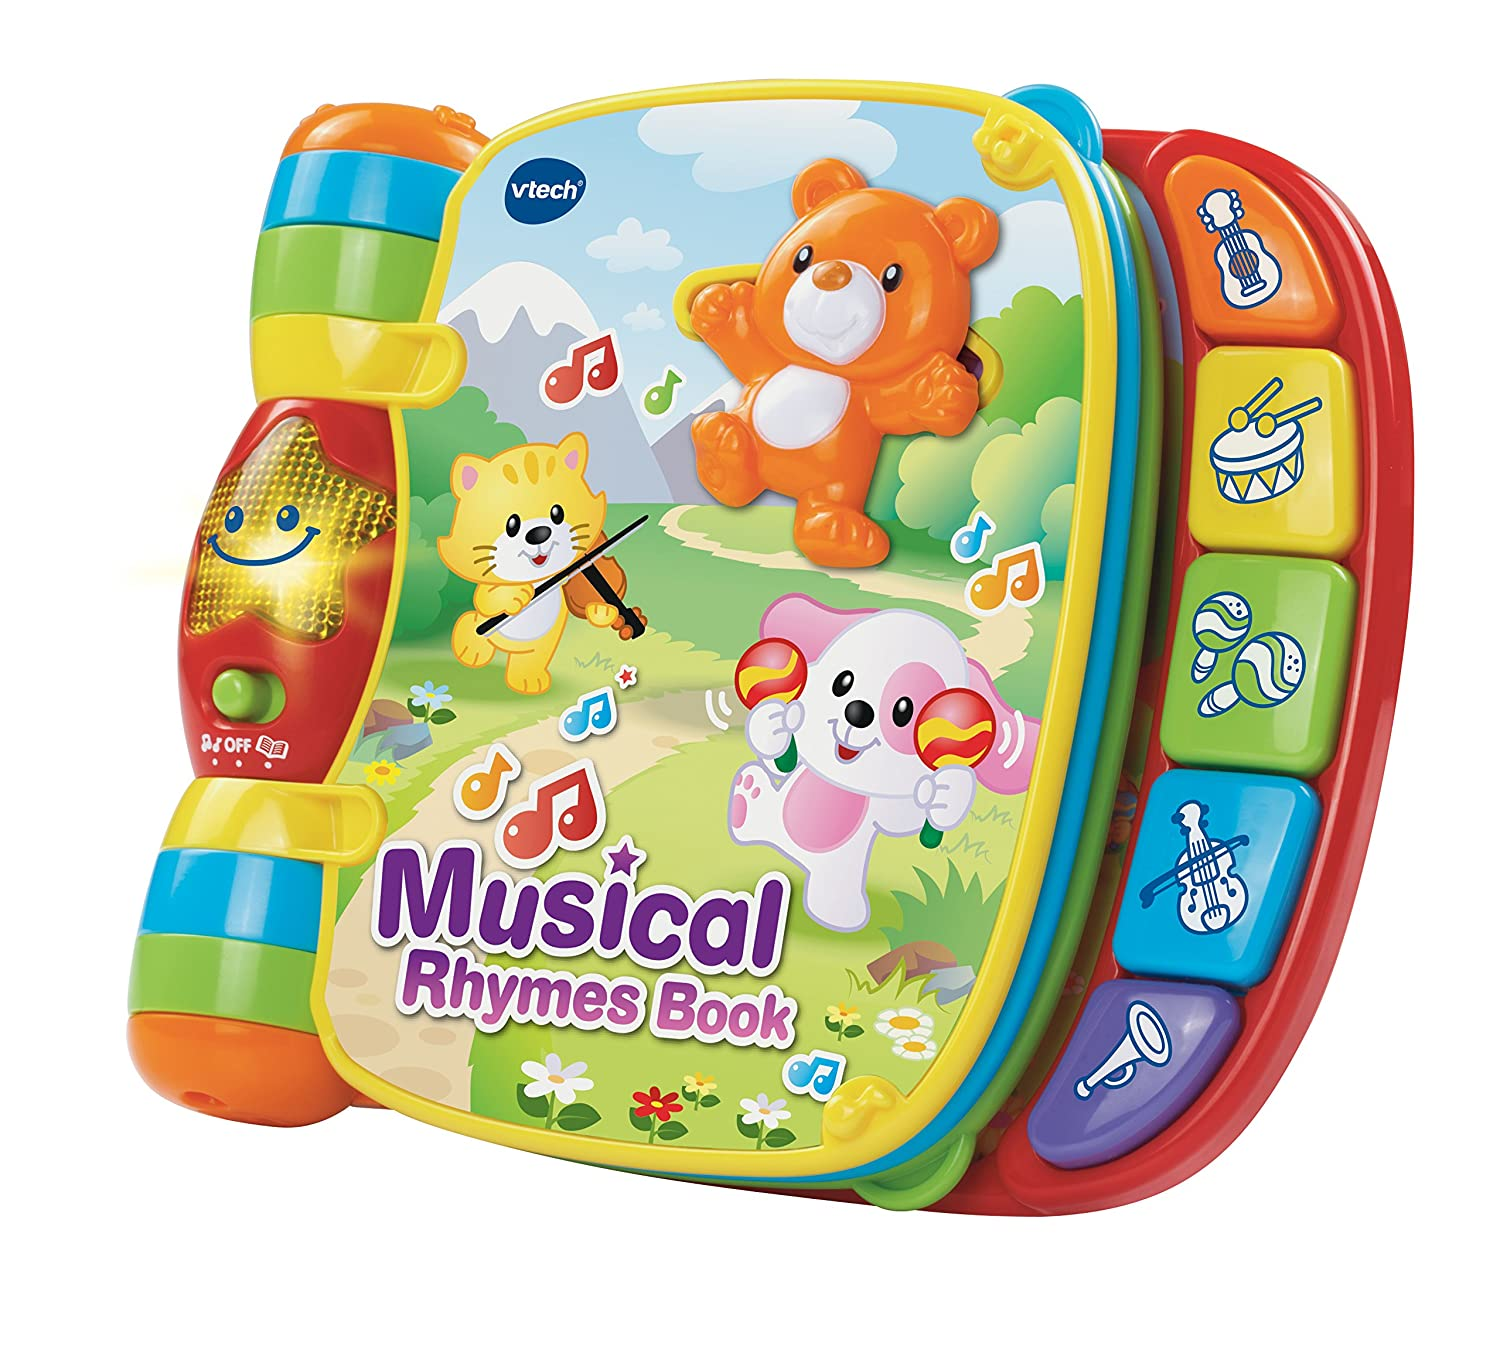 VTech Baby Musical Rhymes Book VTech Baby Amazon Baby